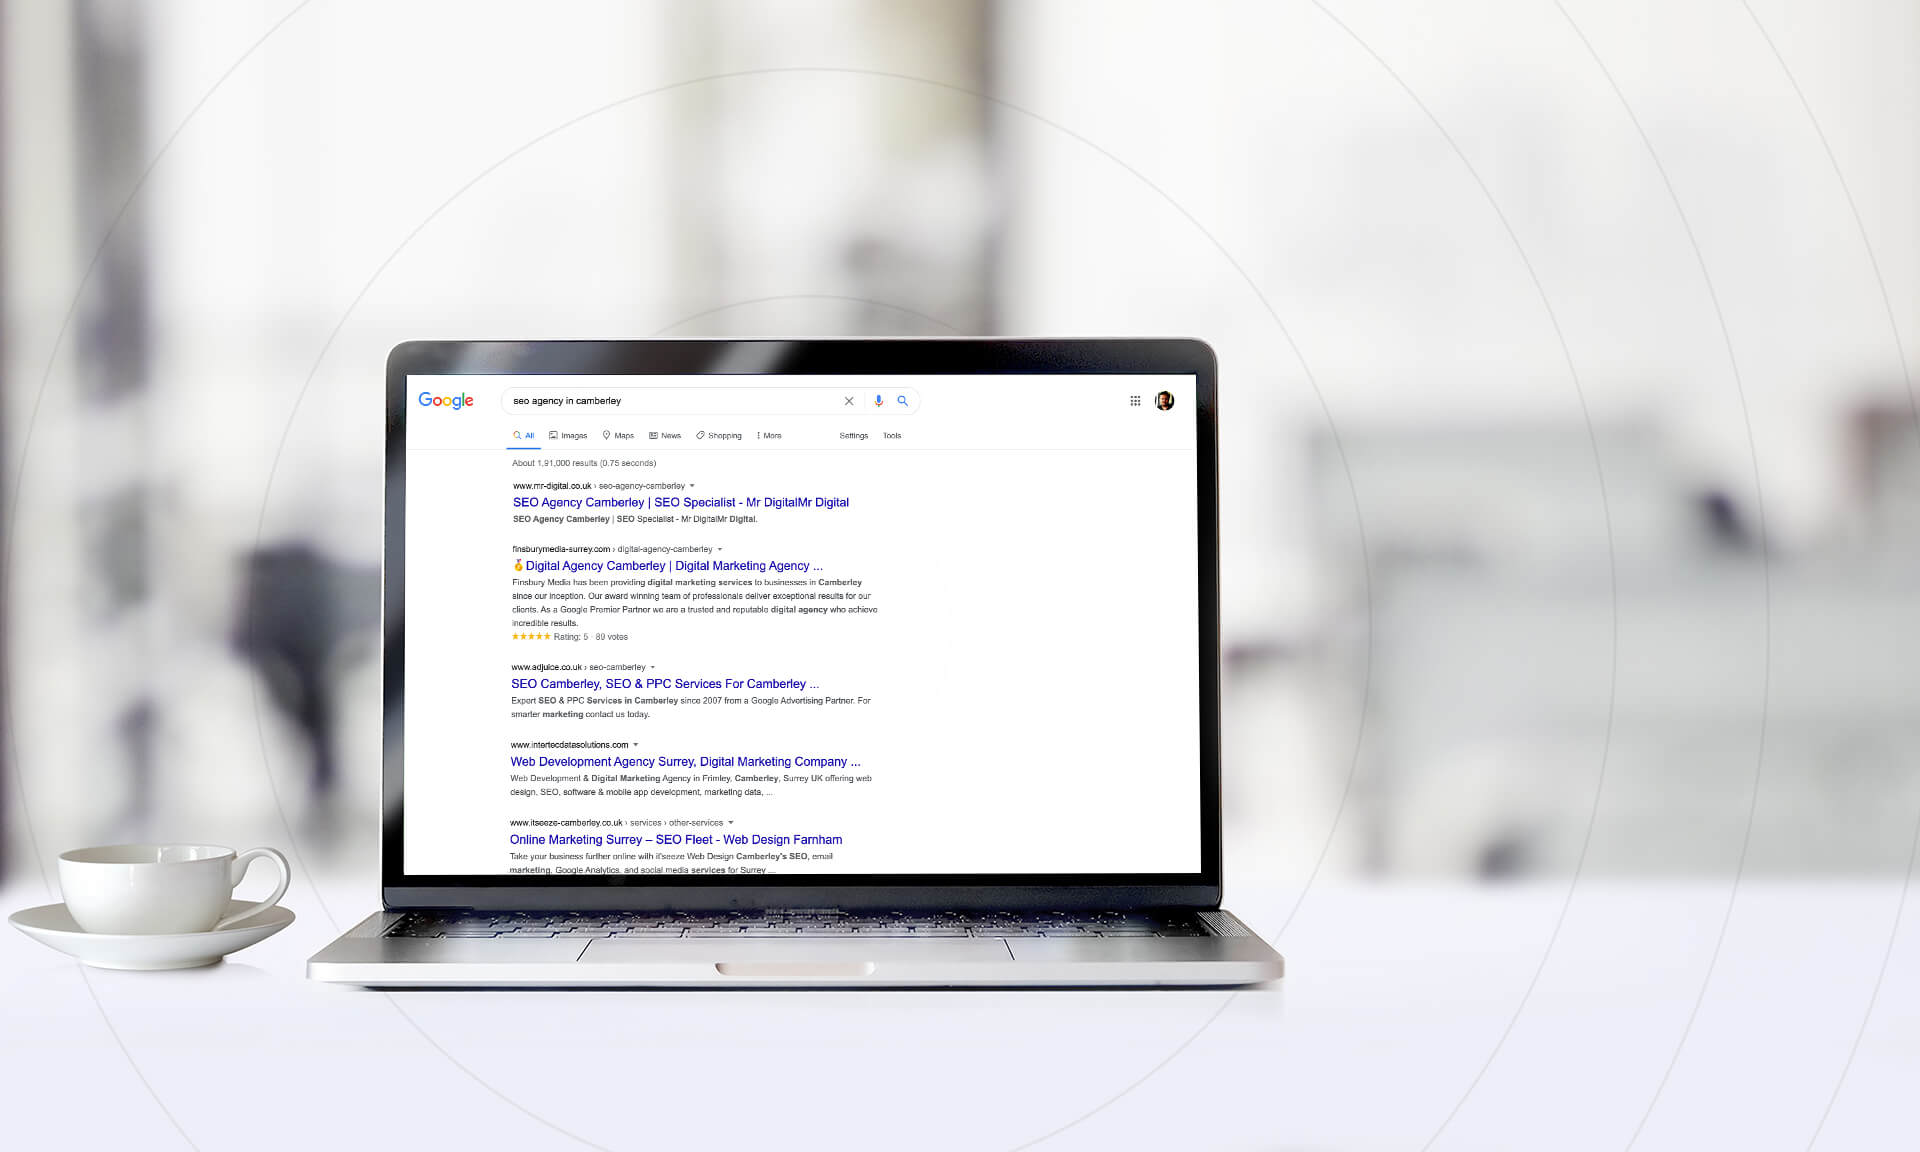 The-Ultimate-Guide-To-SEO-_-Ranking-On-Page-1-Of-Google-in-2021